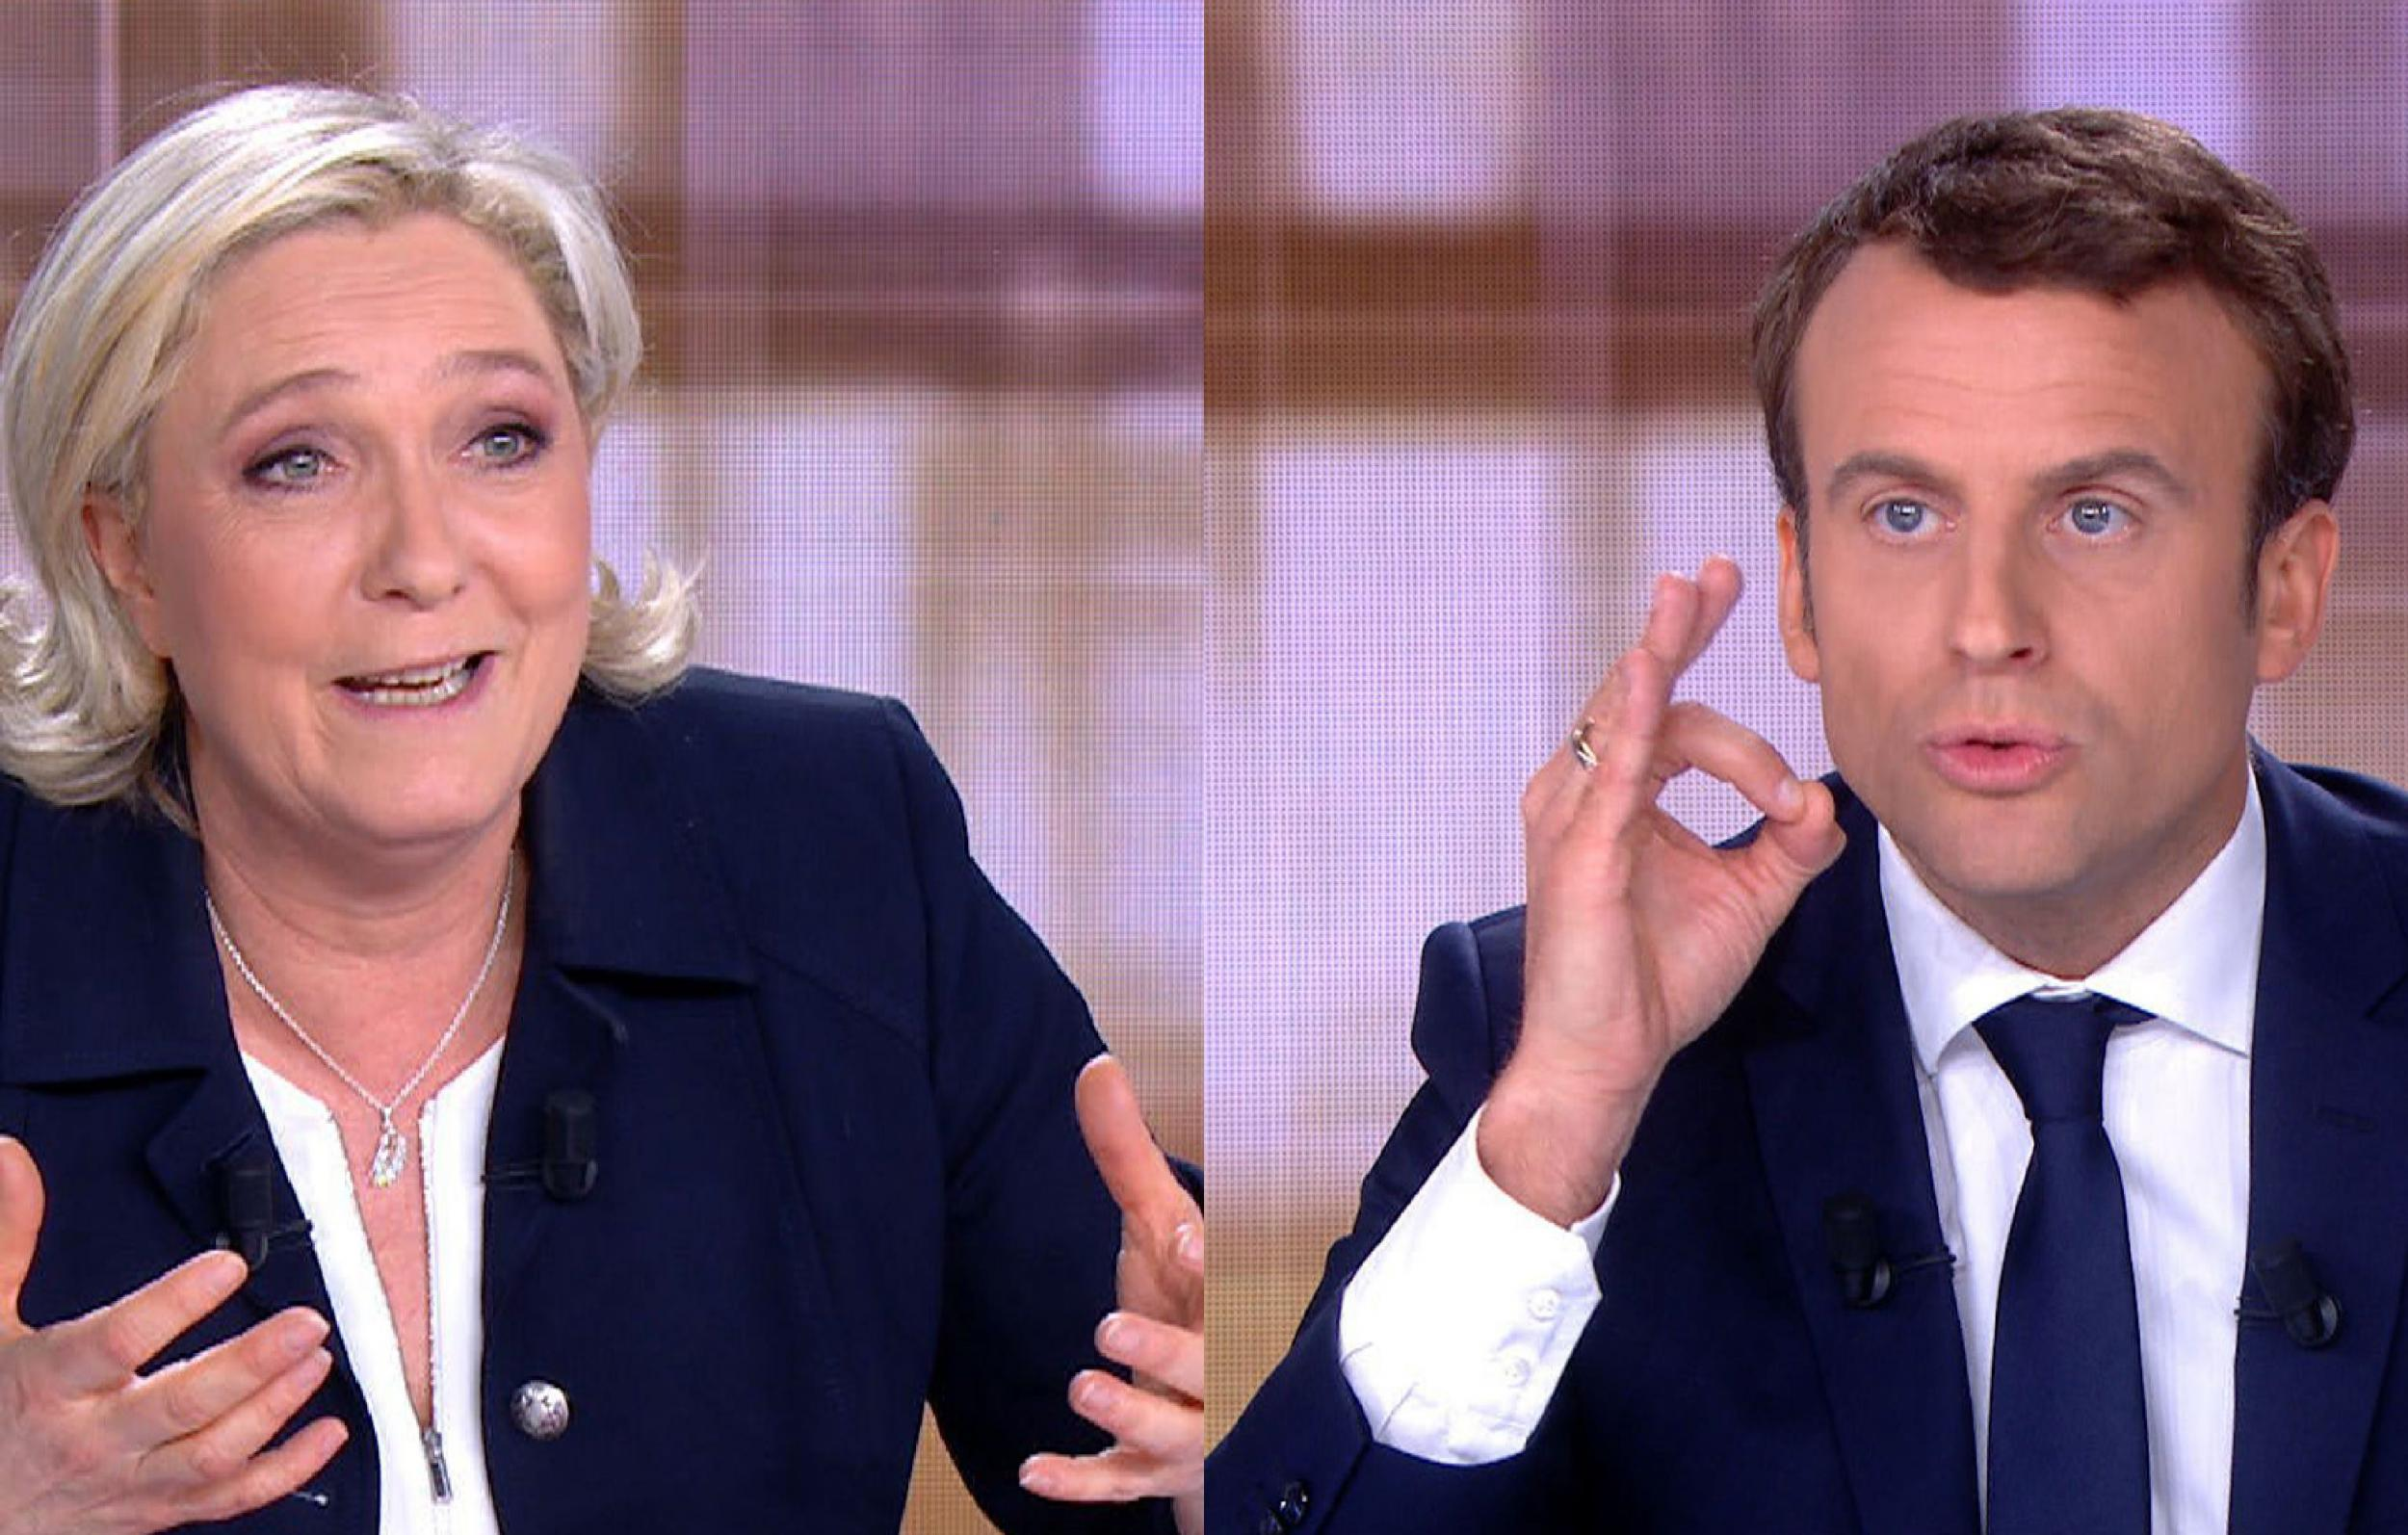 France elections 2017 live - French Election Debate Le Pen Called The High Priestess Of Fear As Macron Wins Acrimonious Final Clash The Independent